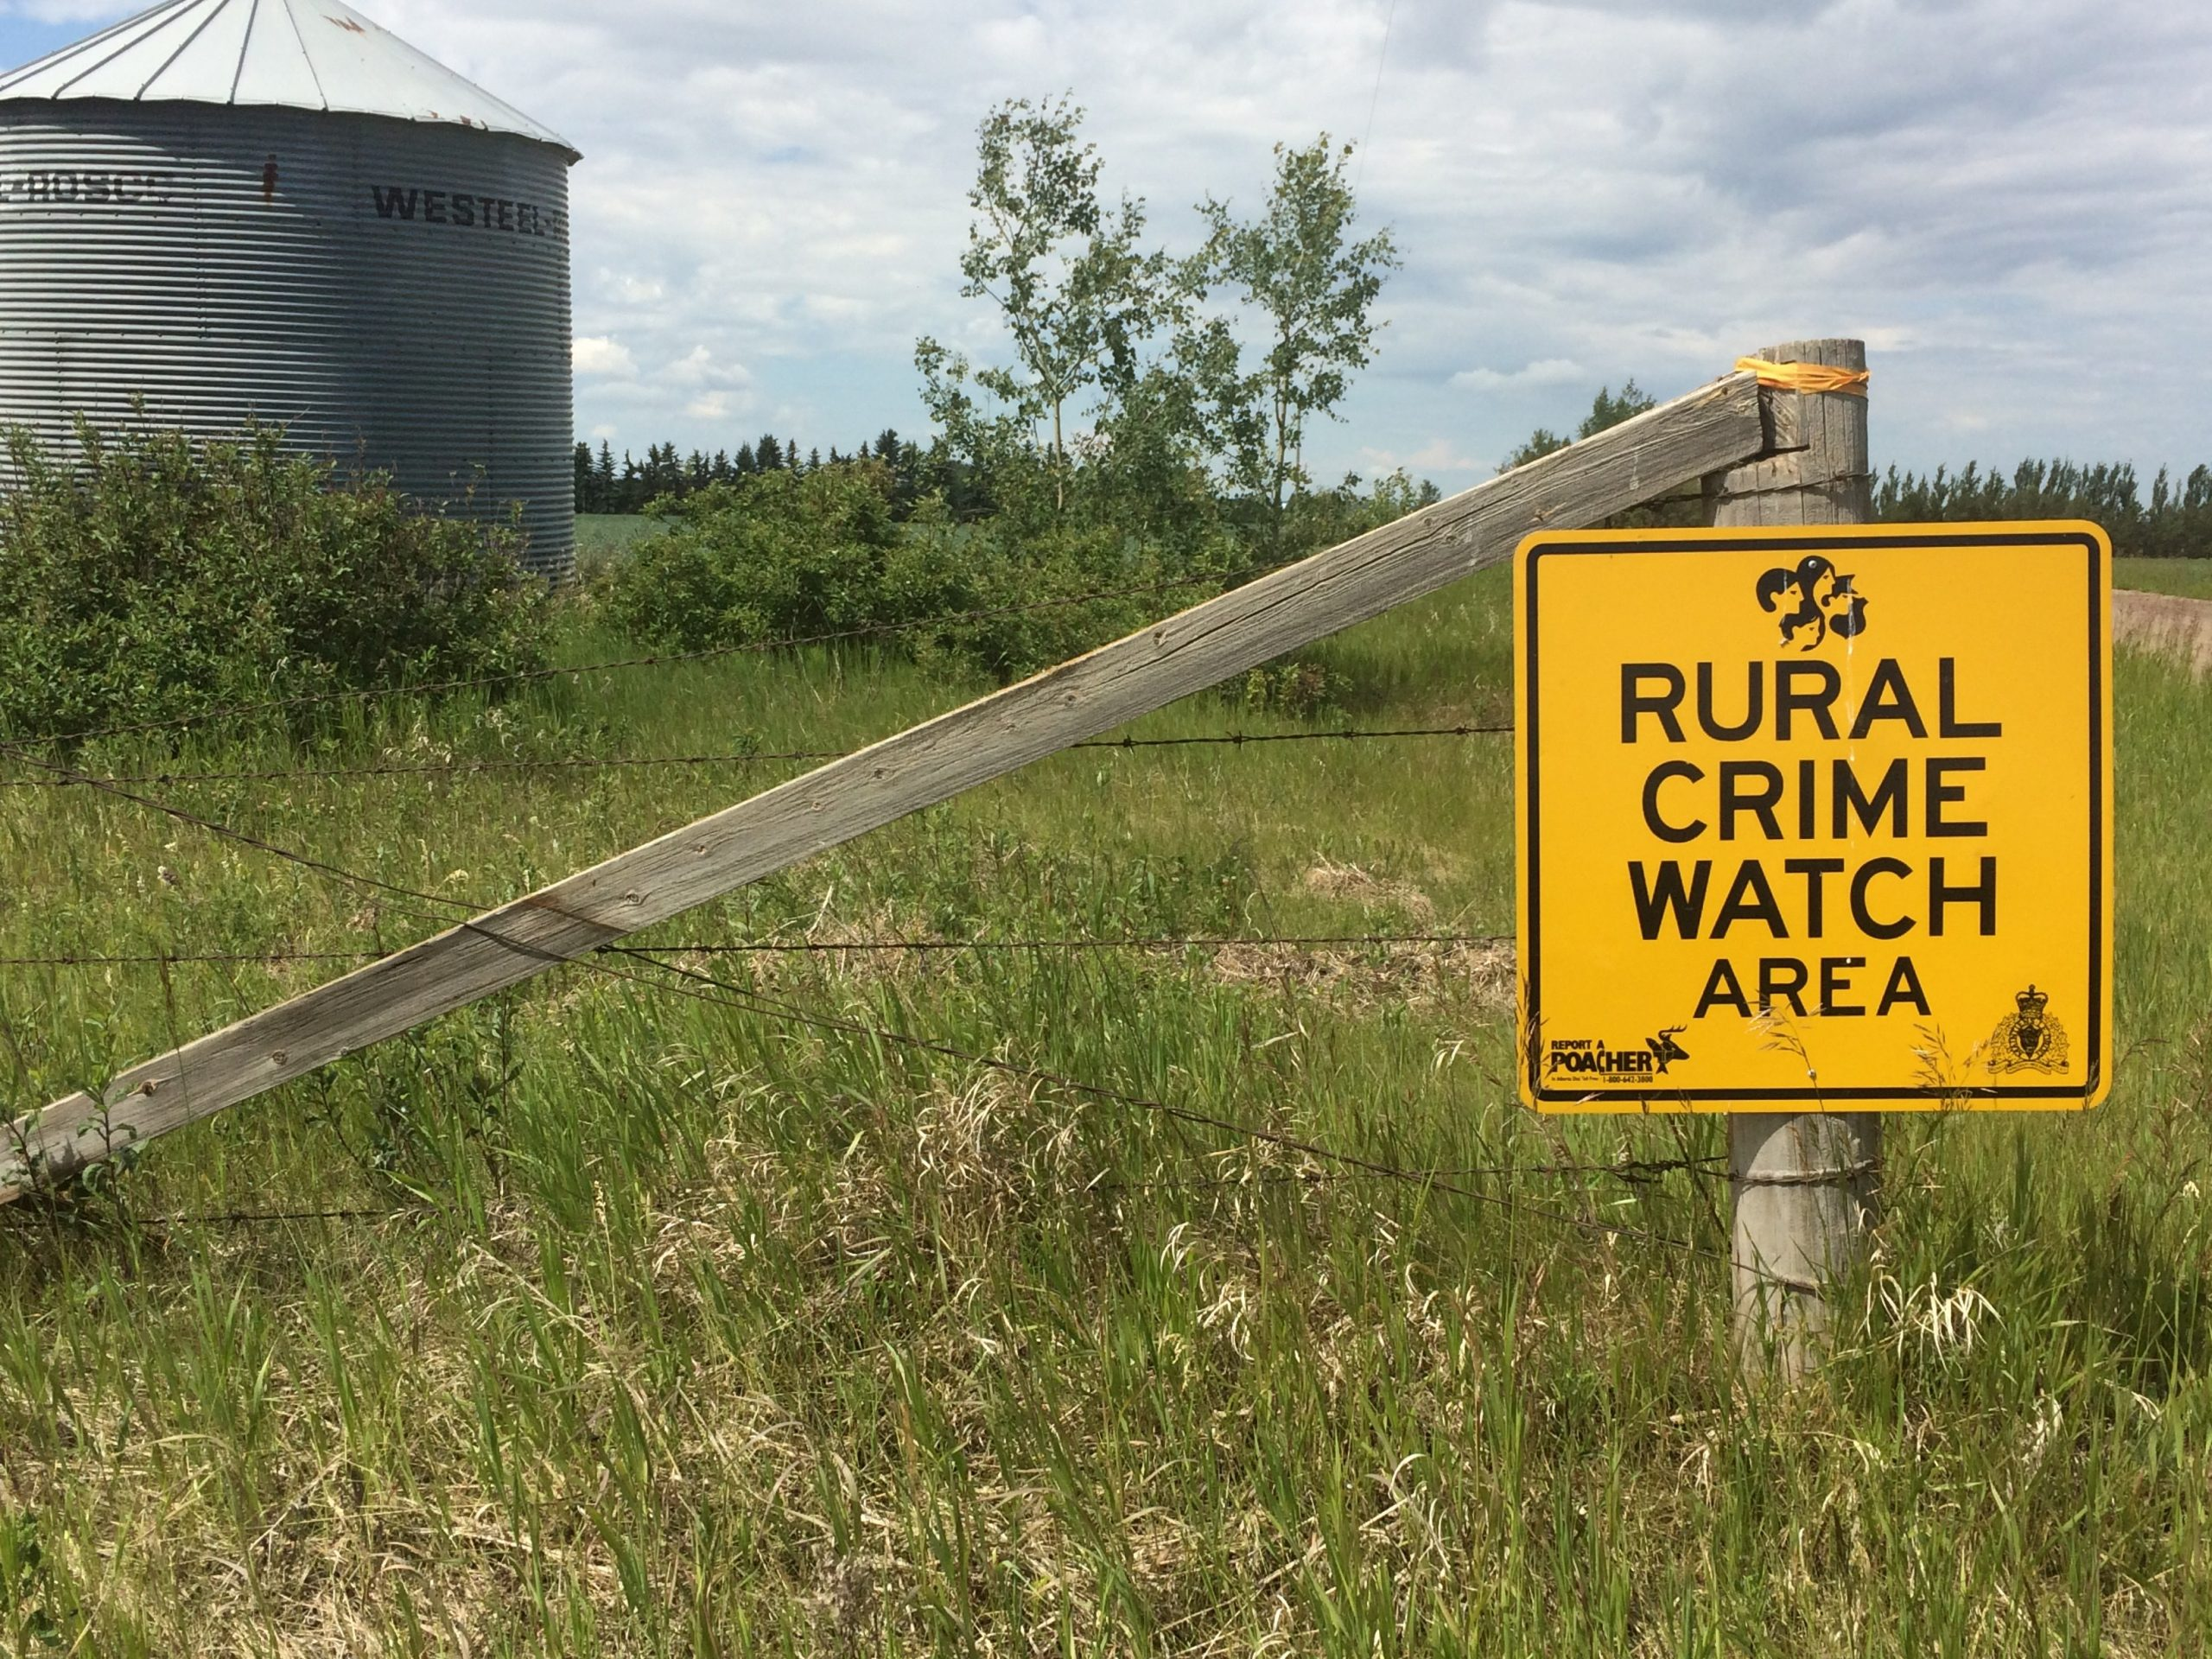 PROVINCE PLANNING AN ANNOUNCEMENT TODAY TO HELP BATTLE RURAL CRIME